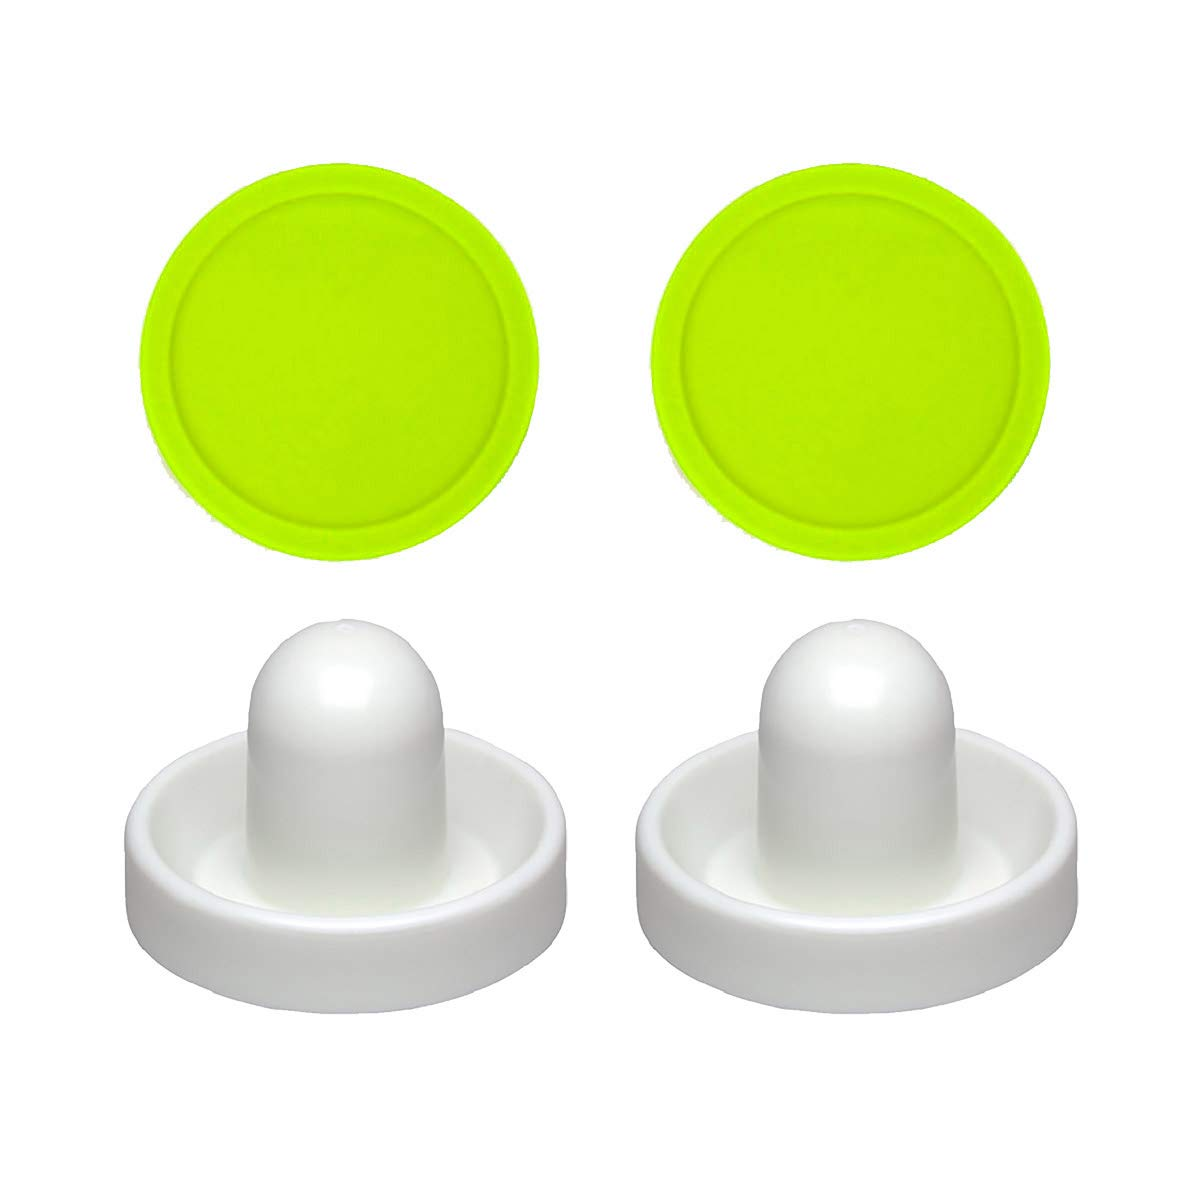 2 Commercial Hockey Fluorescent White Goalies with 2 Large Green Air Pucks by Suzo Happ